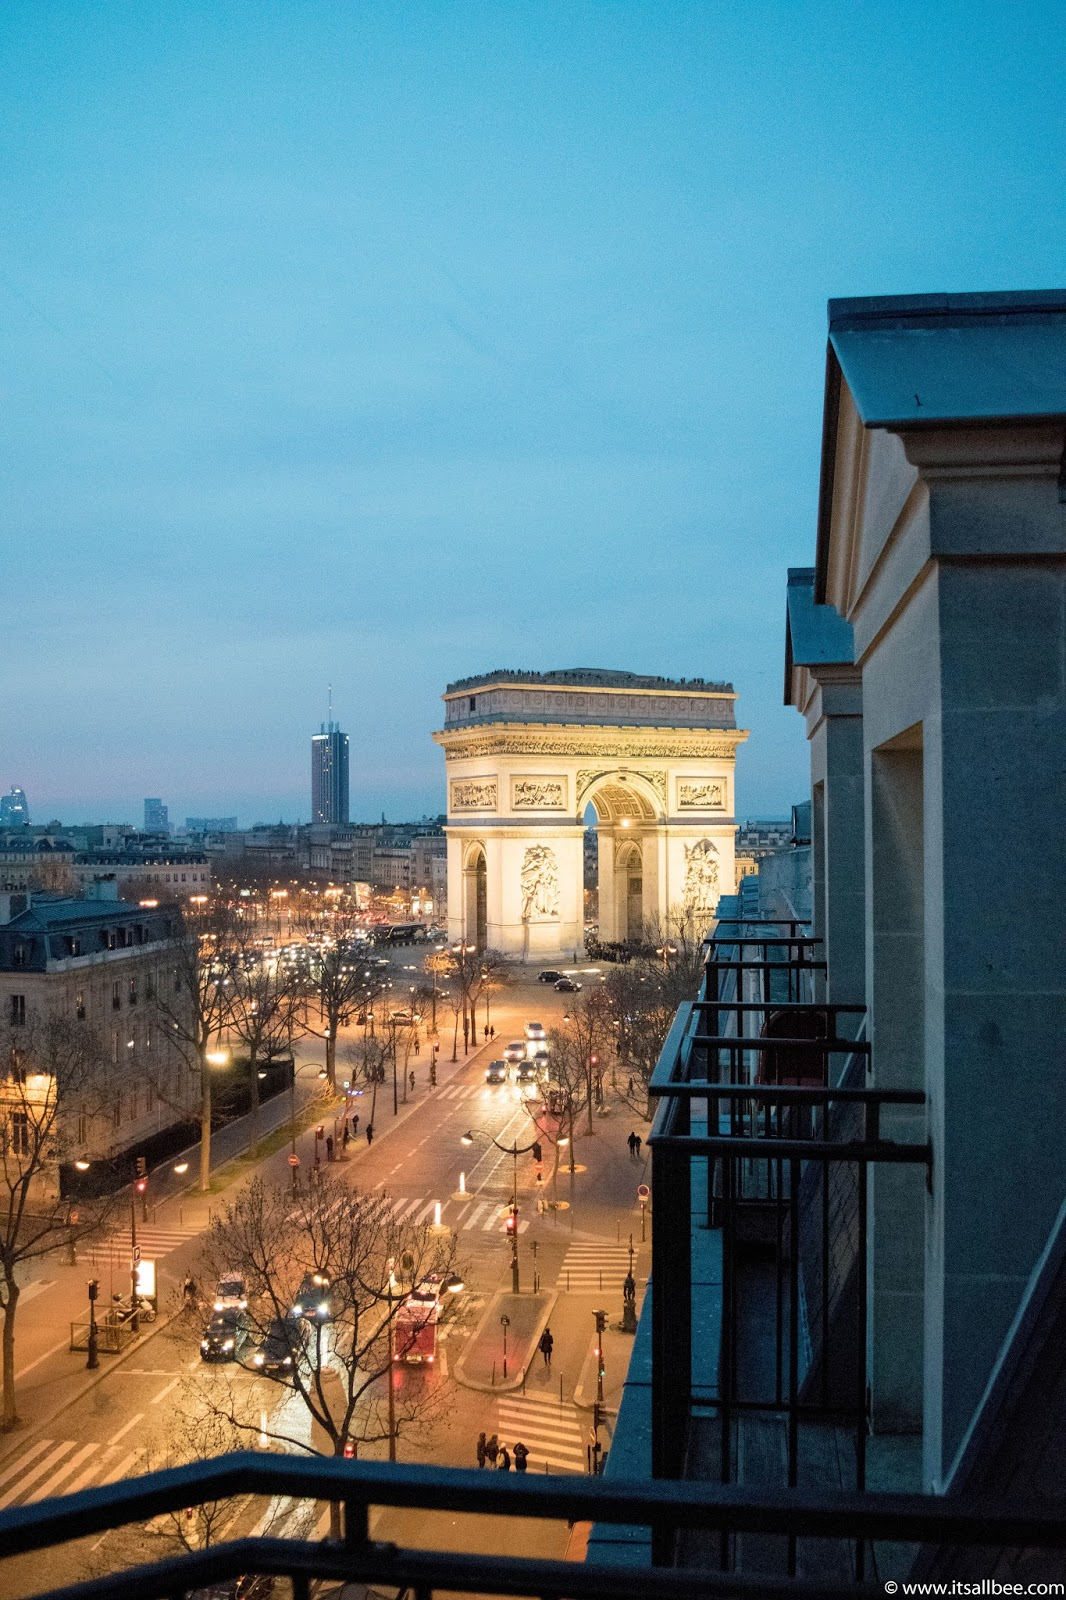 Paris Hotels With Views of Eiffel Tower [and Arc de Triomphe] | hotels with eiffel tower view from room